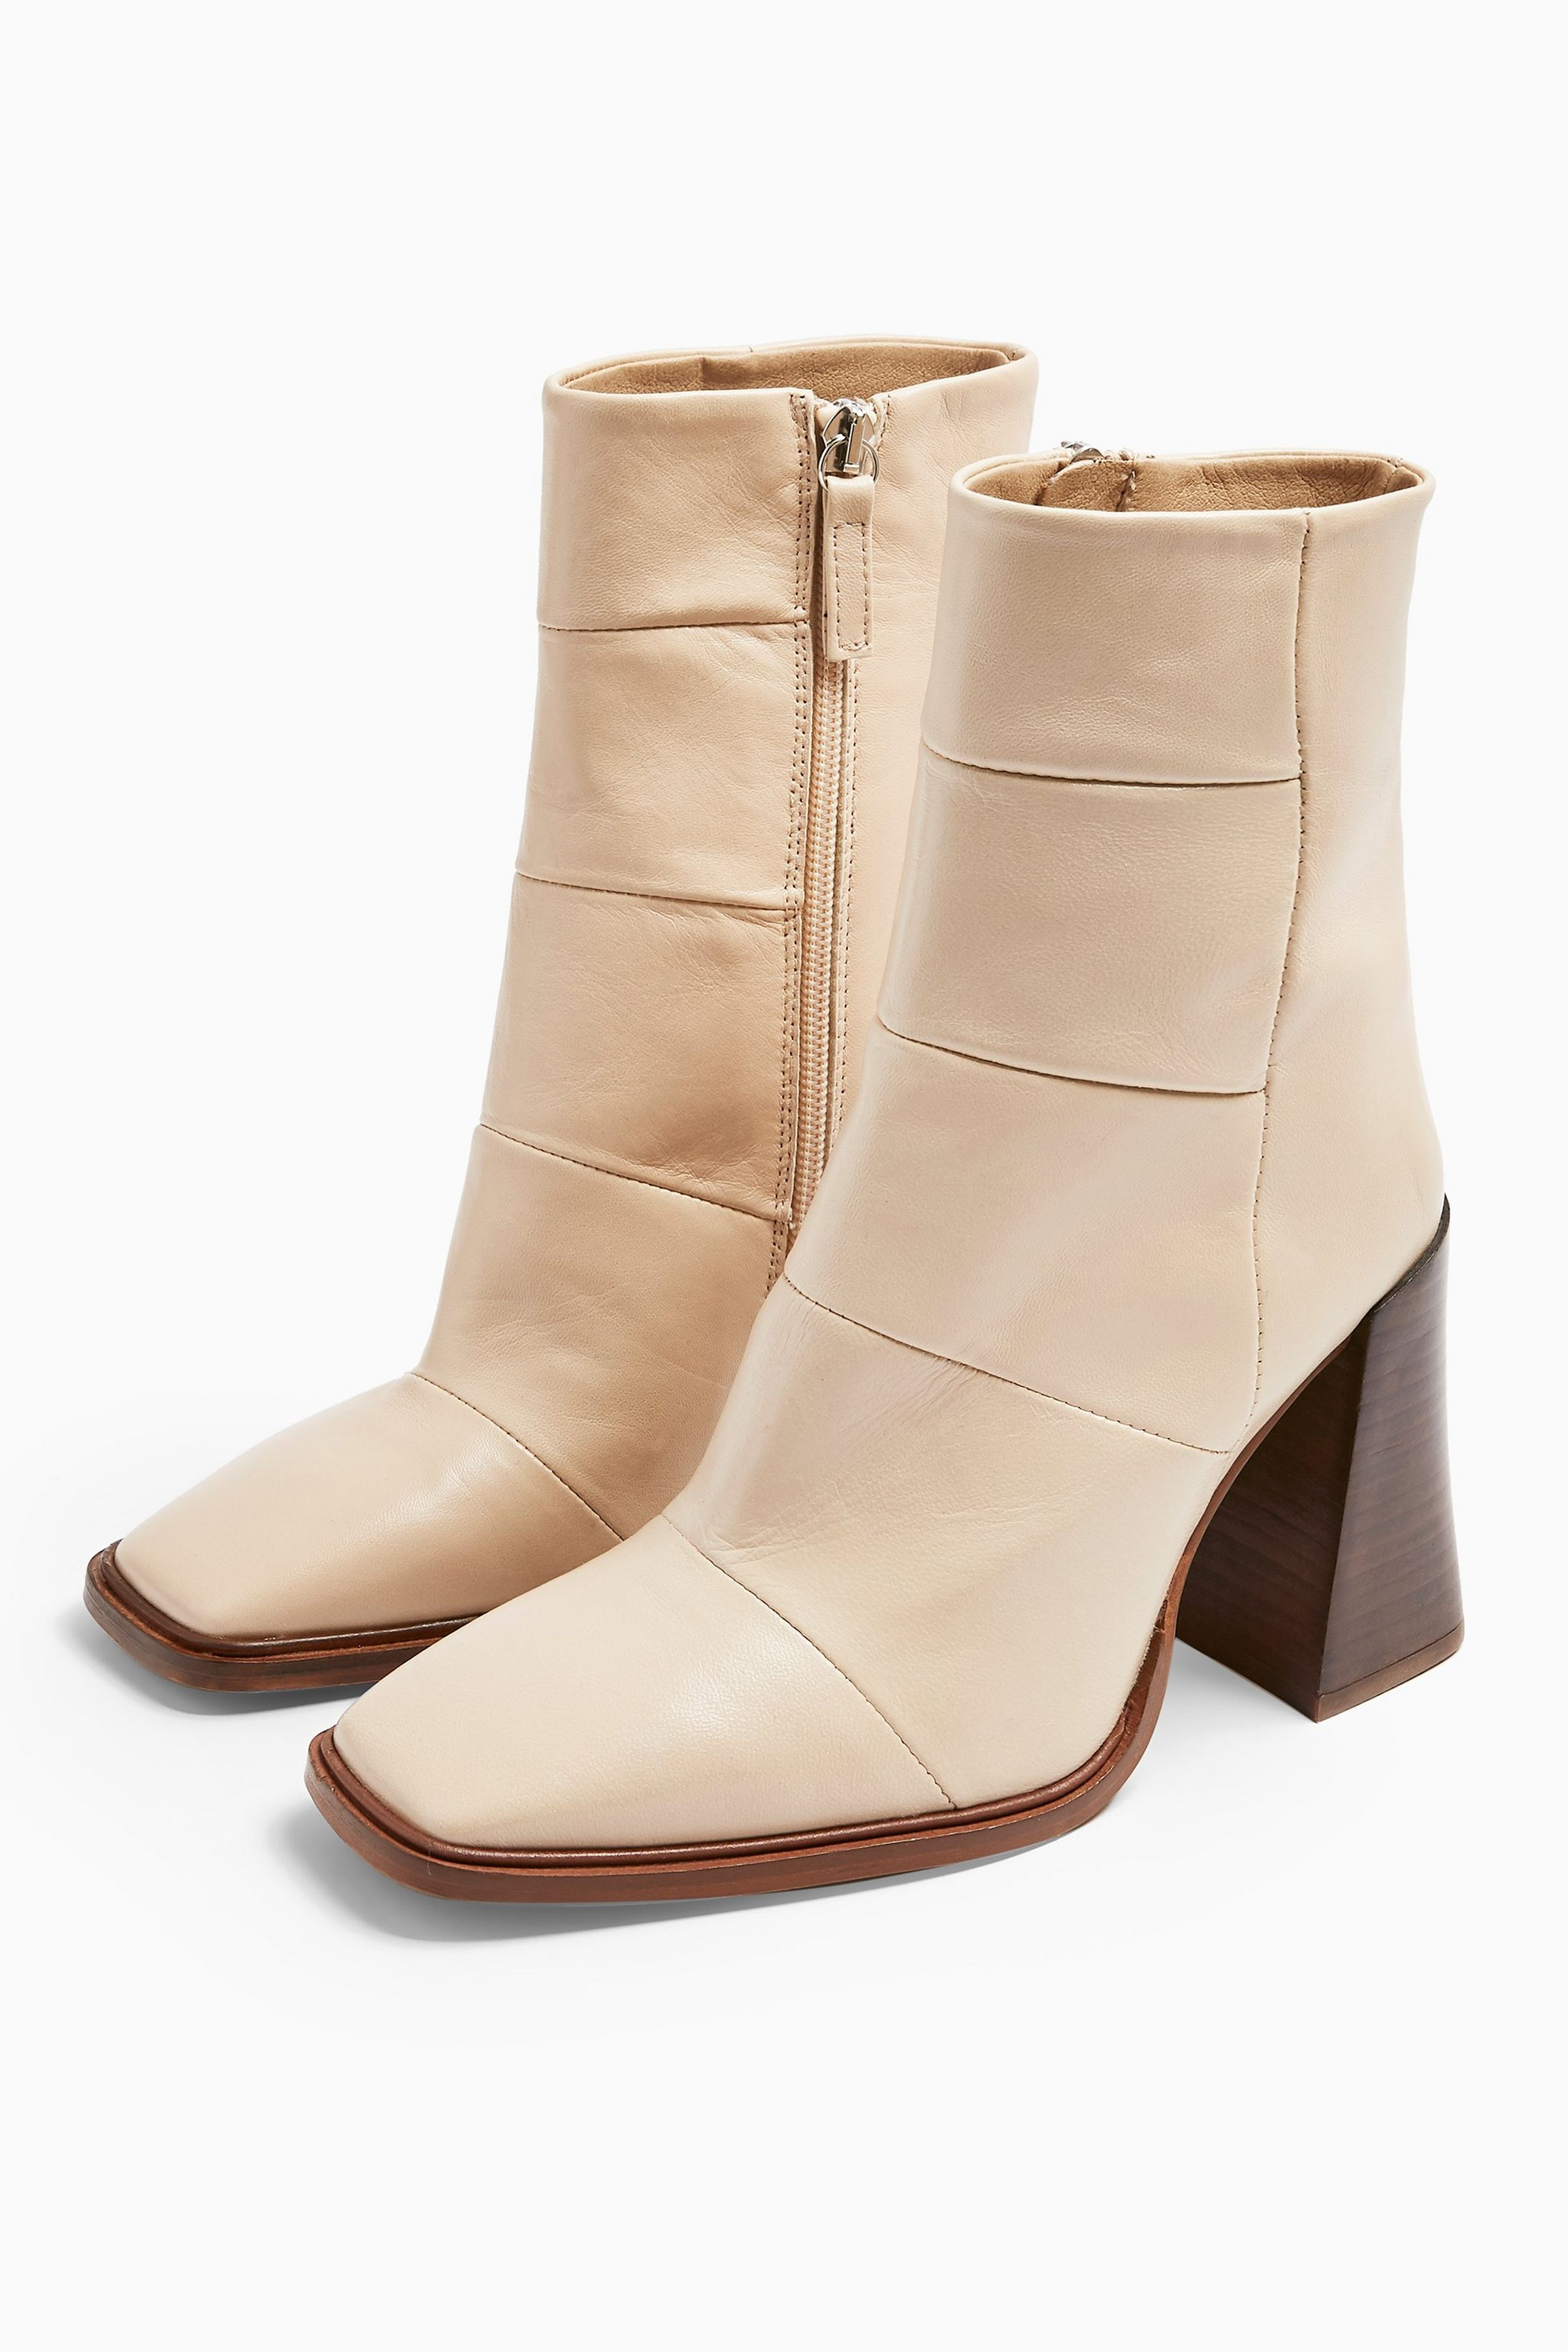 HARTLEY Leather White Boots | Boots